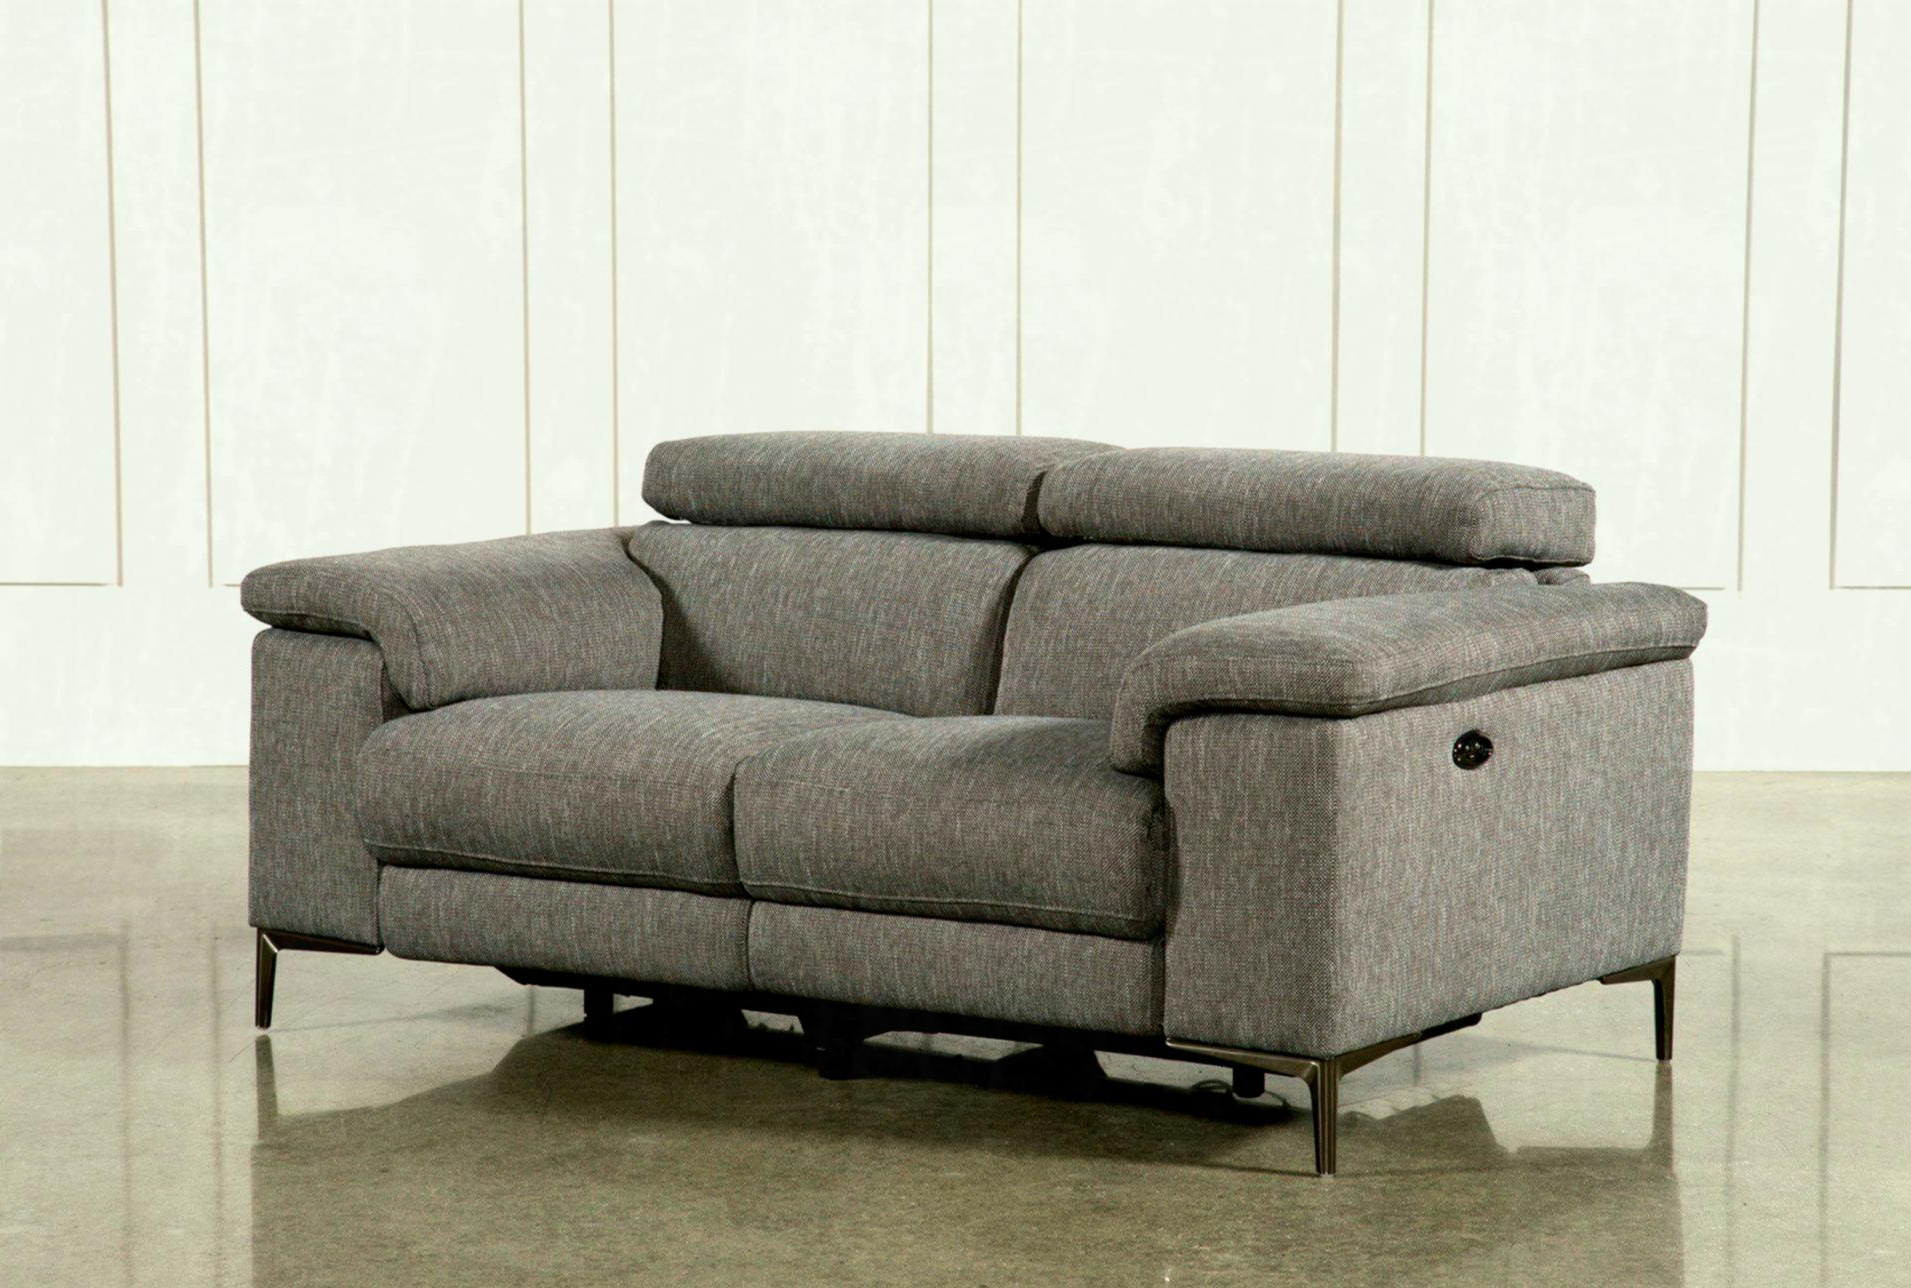 Delano 2 Piece Sectionals With Laf Oversized Chaise For Well Known Added To Cart Delano Piece Sectional W Laf Oversized Chaise Living (View 8 of 20)